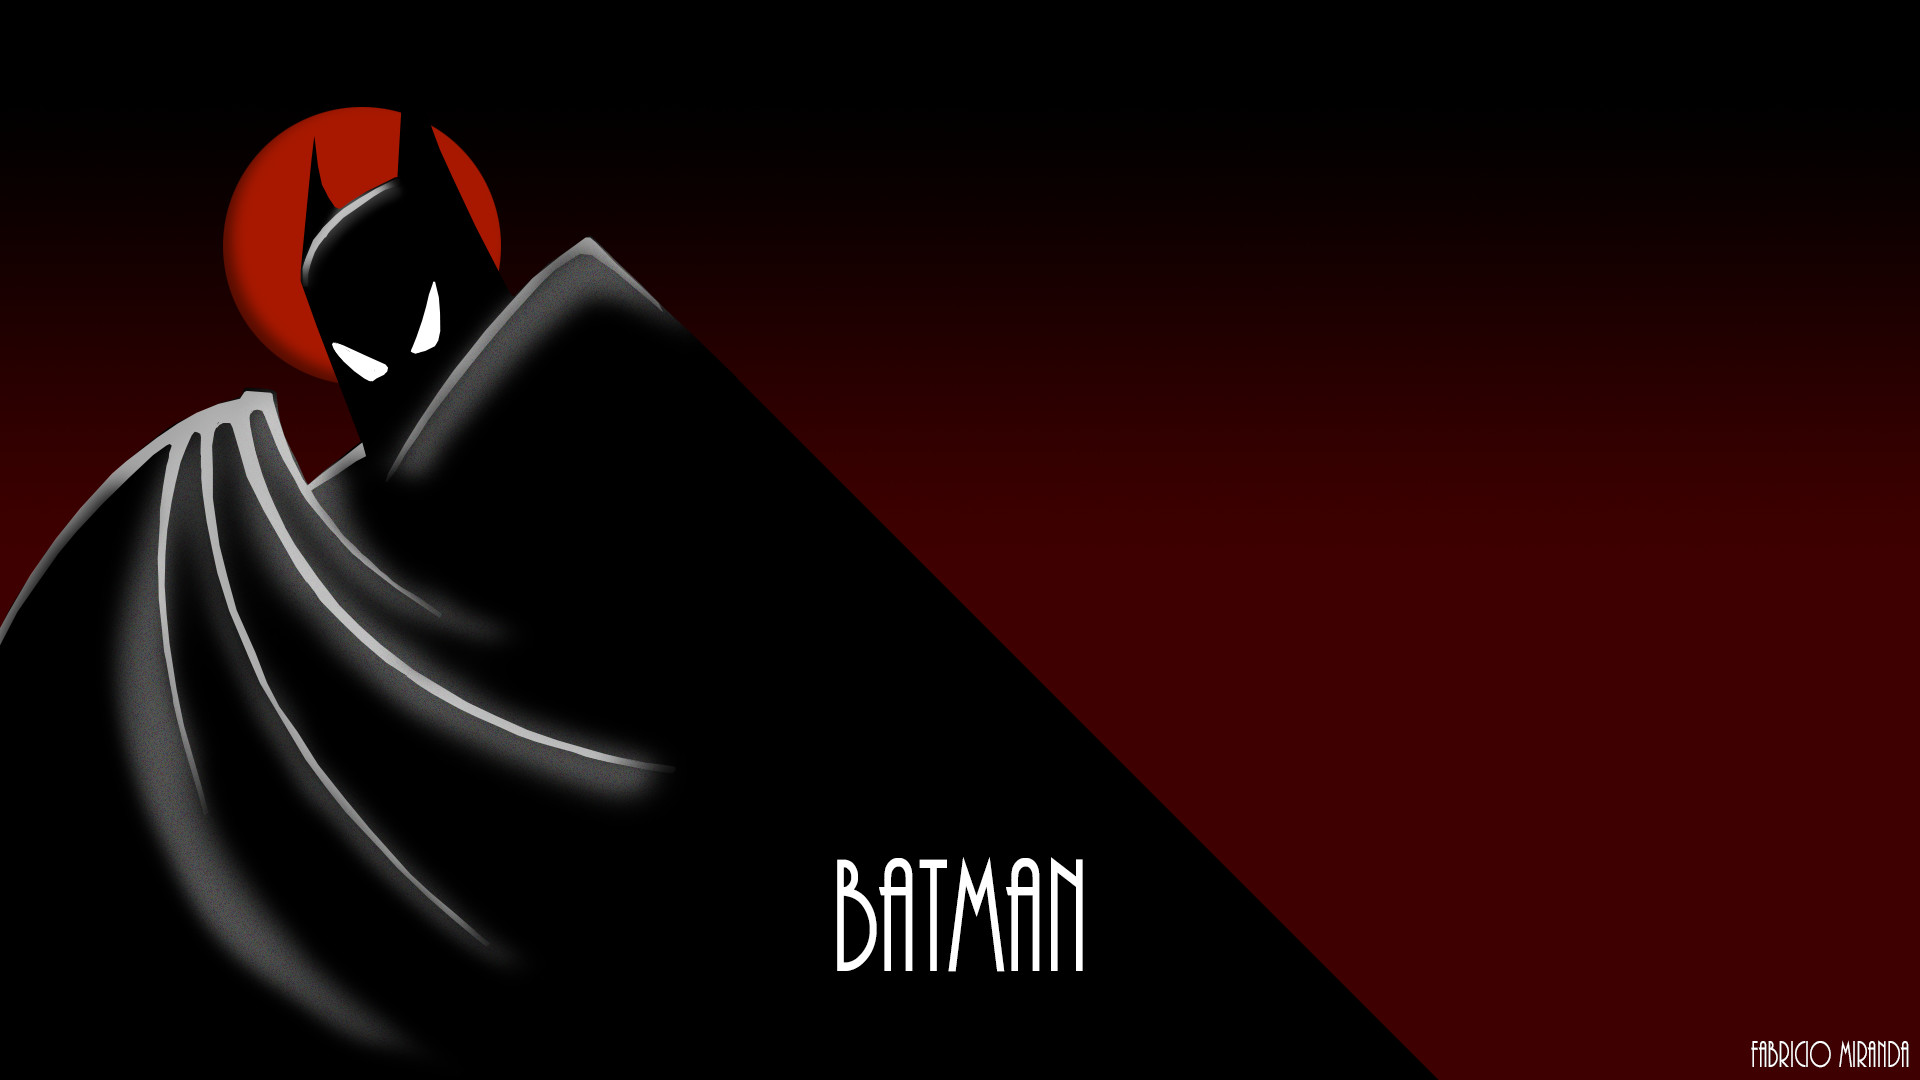 1920x1080 Batman Animated Serie 90's Wallpaper by FabricioUli97 Batman Animated Serie  90's Wallpaper by FabricioUli97